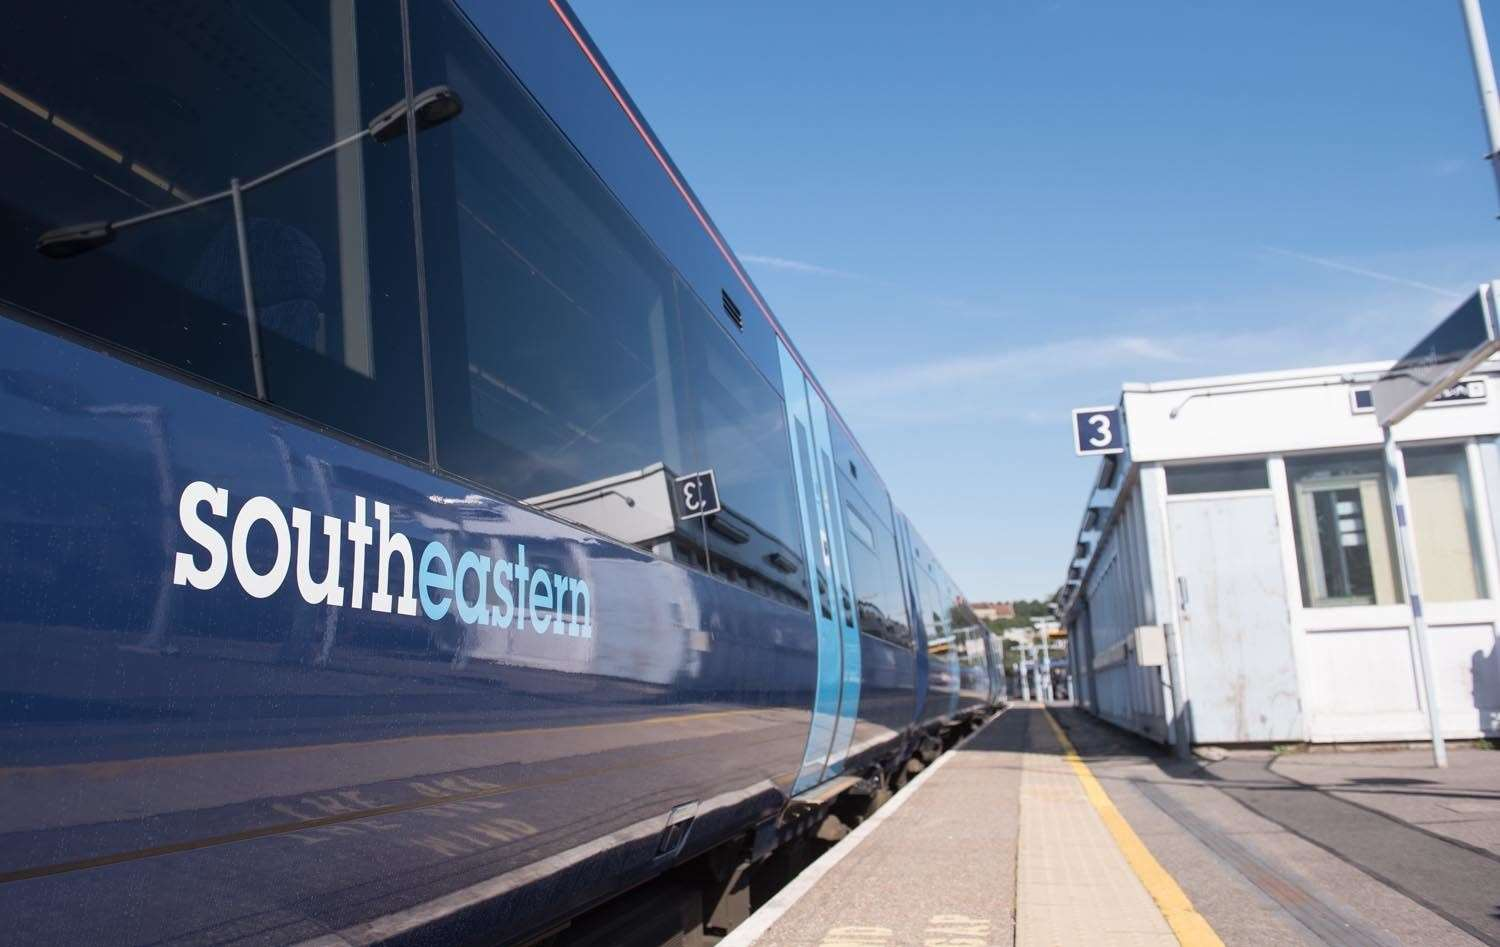 There will be no Southeastern services in or out of London Victoria on Sunday